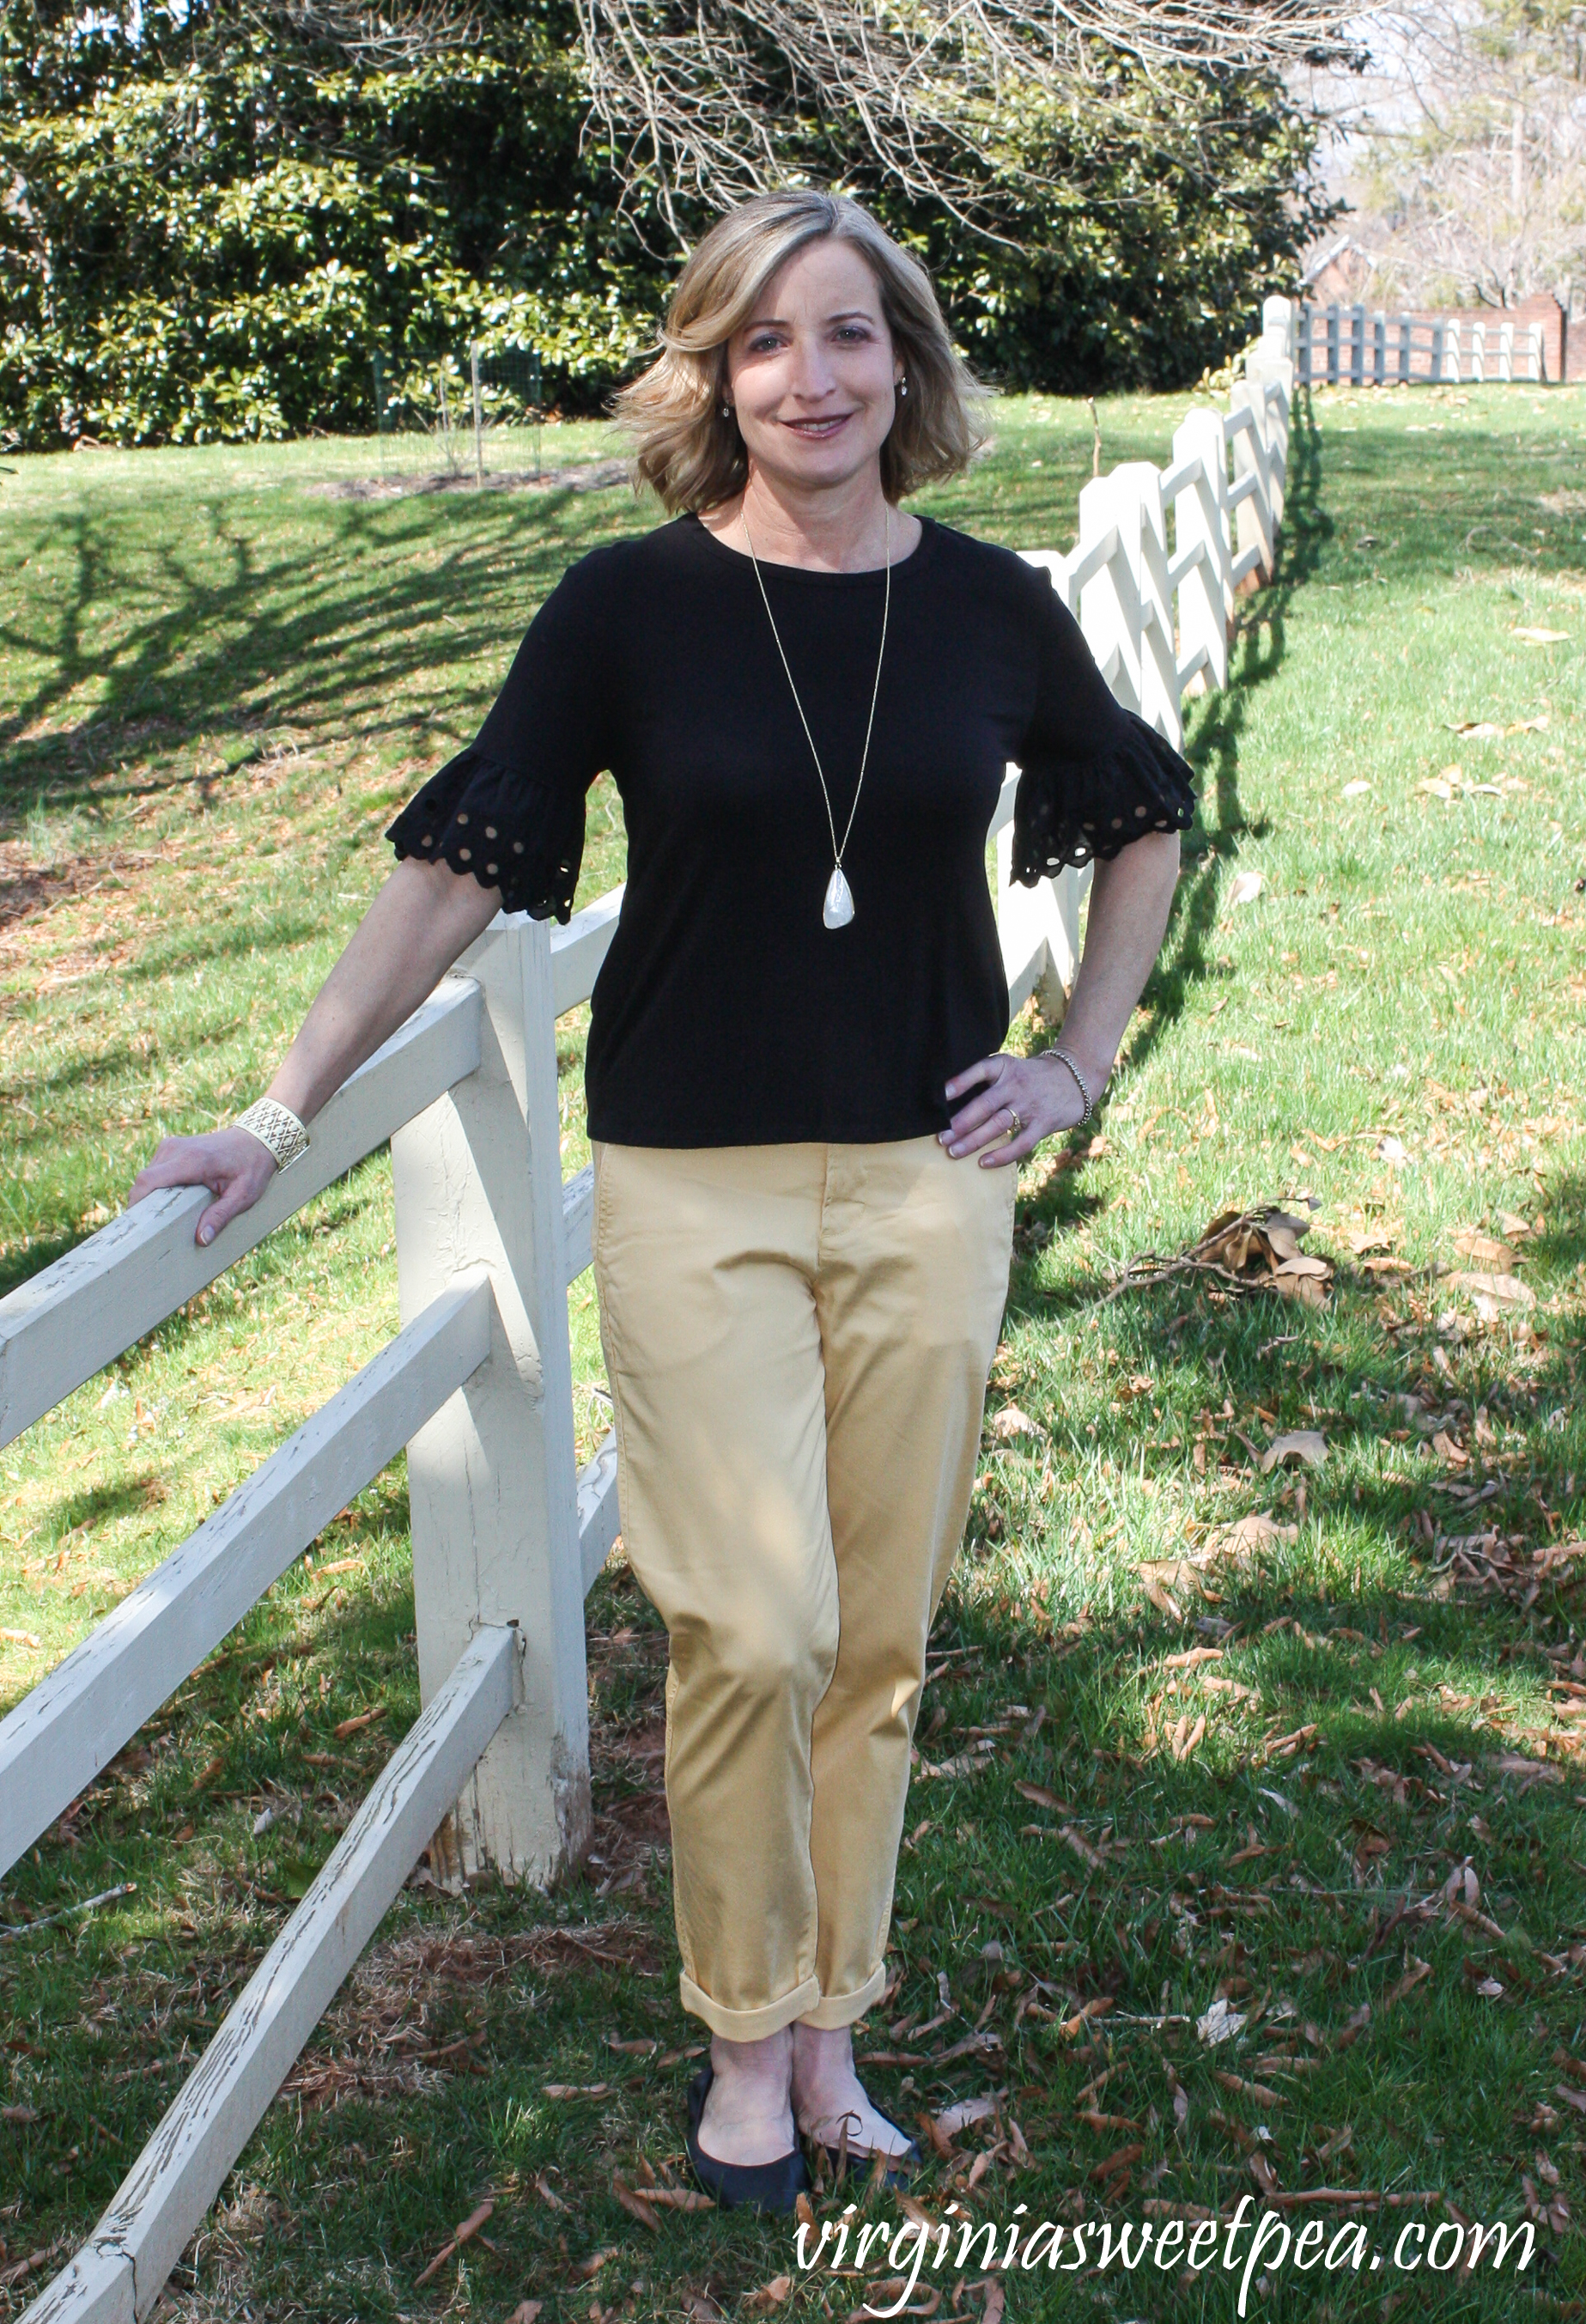 Stitch Fix Review for April 2019 - Liverpool Ryder Straight Leg Trouser #stitchfix #stitchfixreview #stitchfixspring #springstitchfix